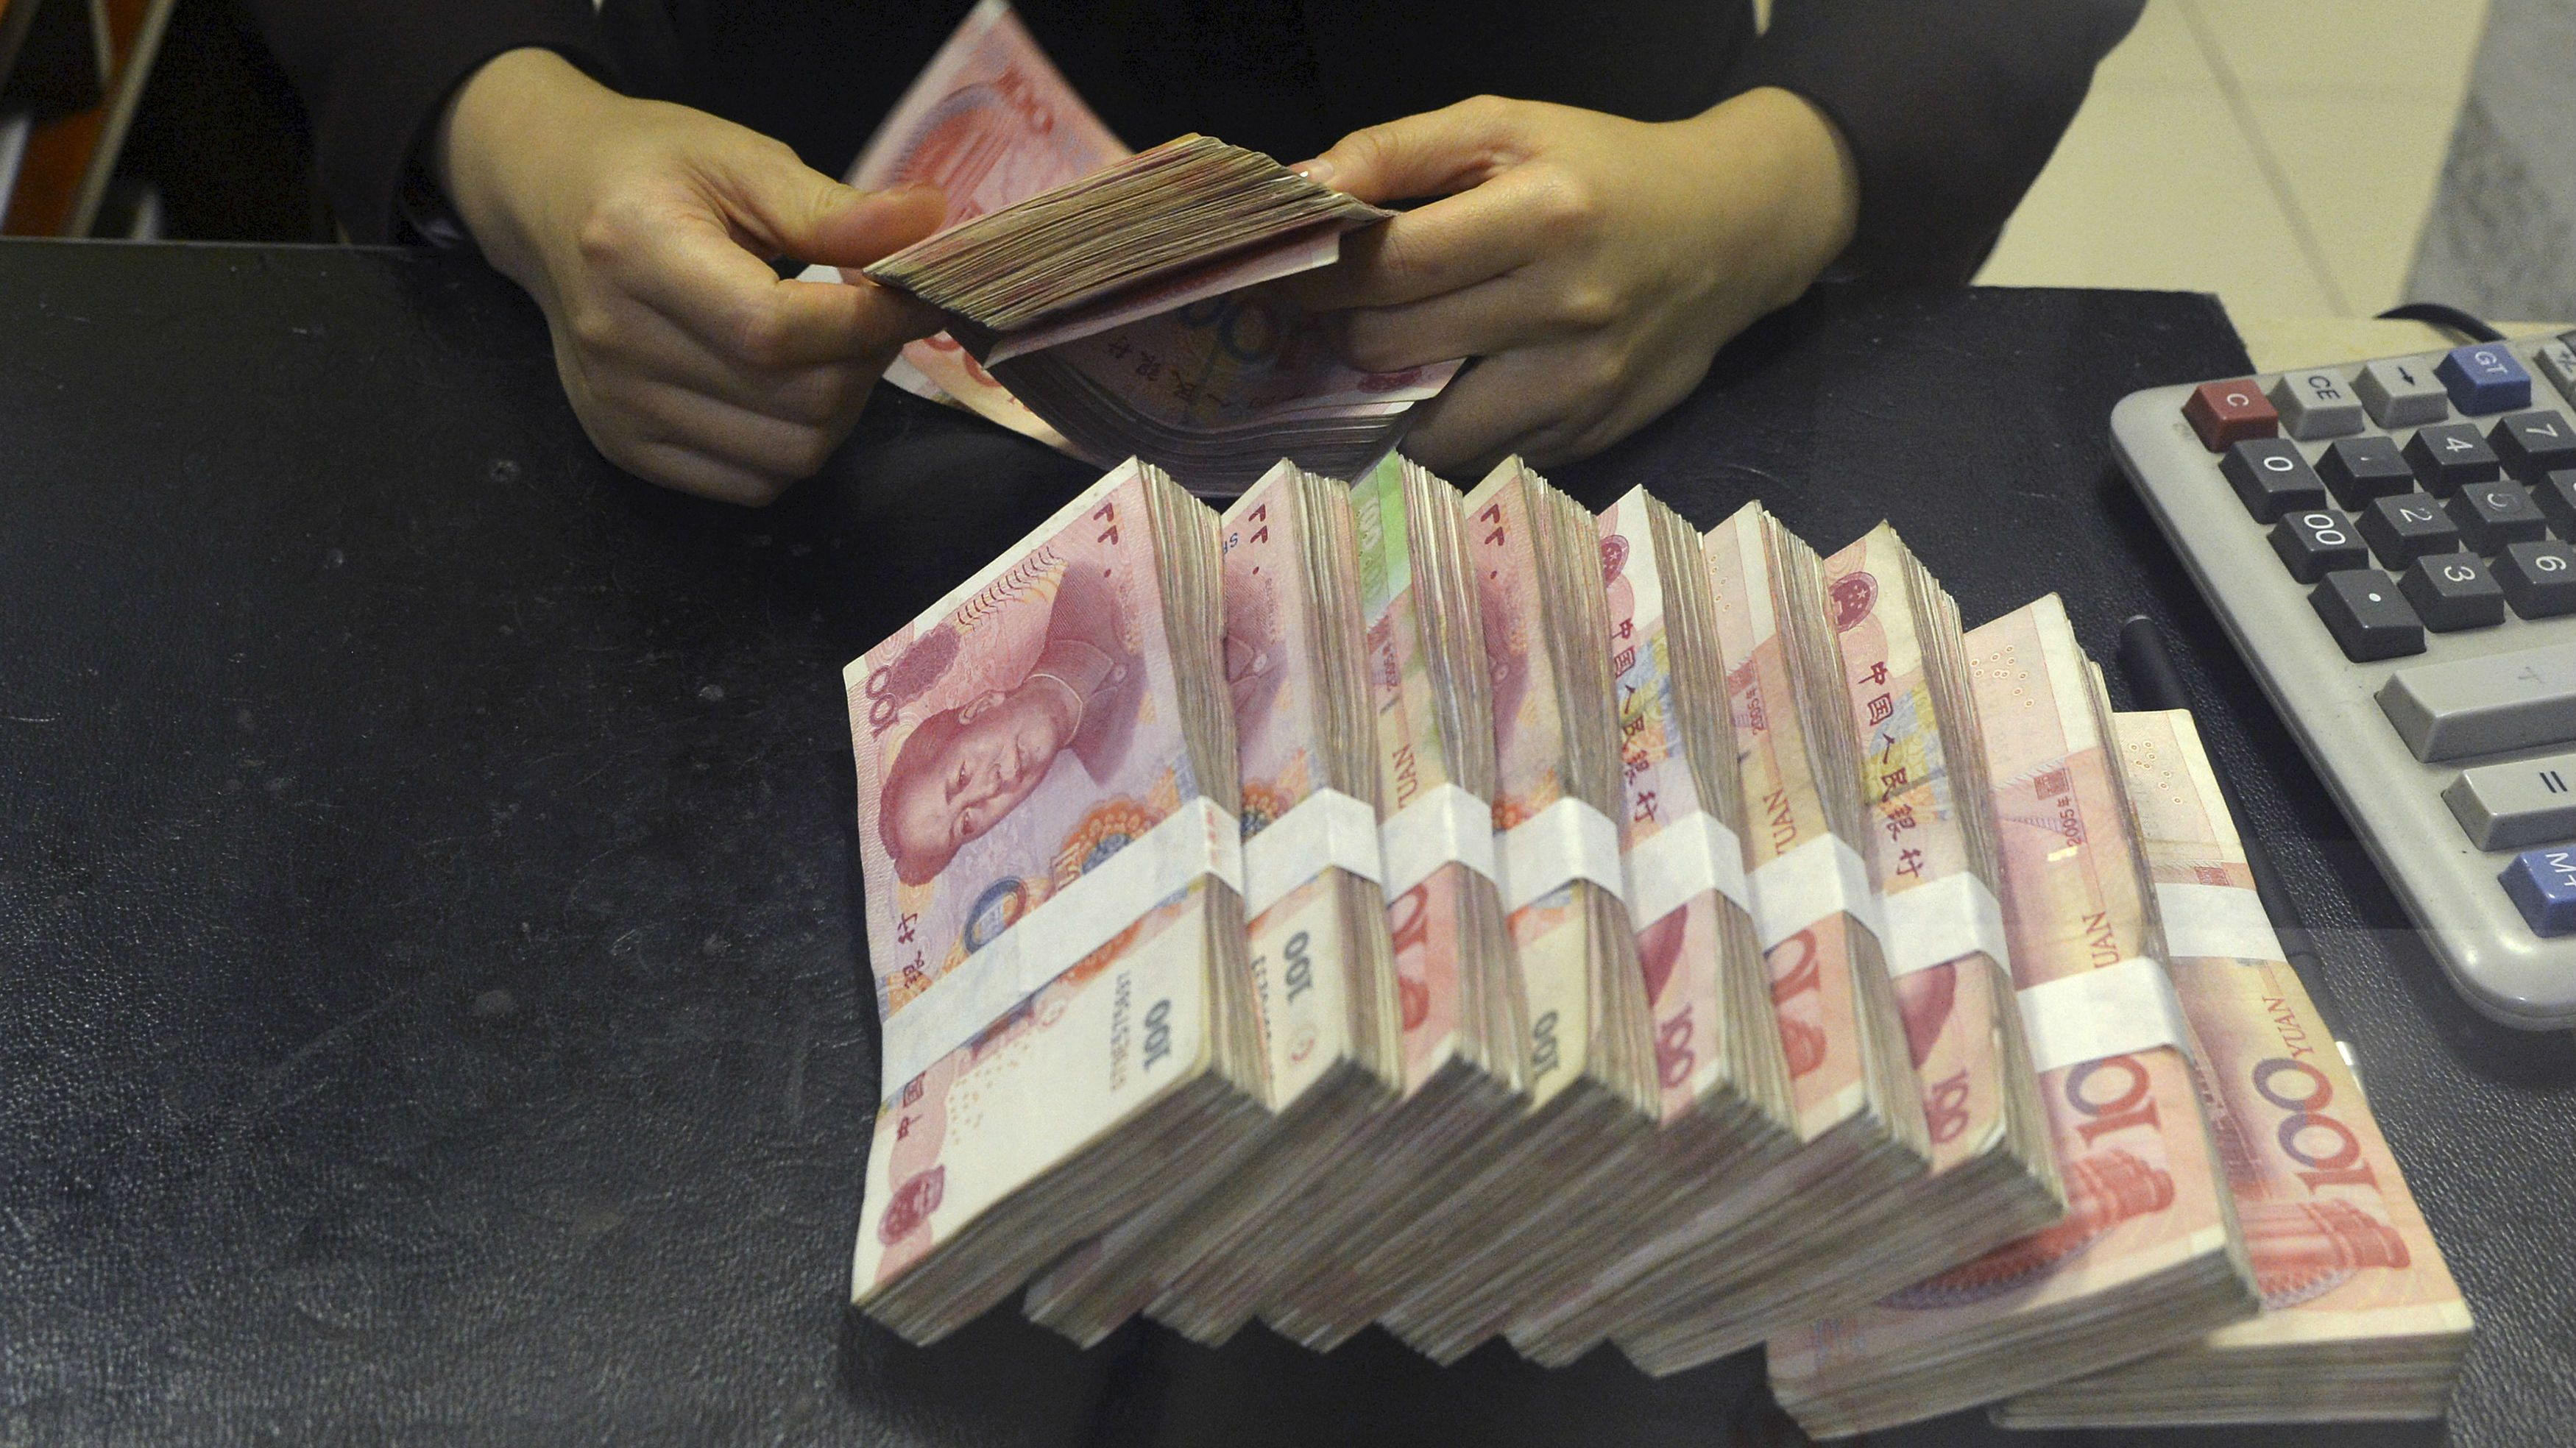 A clerk counts 100 Chinese yuan banknotes at a branch of China Merchants Bank in Hefei, Anhui province April 20, 2015. China's central bank on Sunday cut the amount of cash that banks must hold as reserves, the second industry-wide cut in two months, adding more liquidity to the world's second-biggest economy to help spur bank lending and combat slowing growth. REUTERS/Stringer